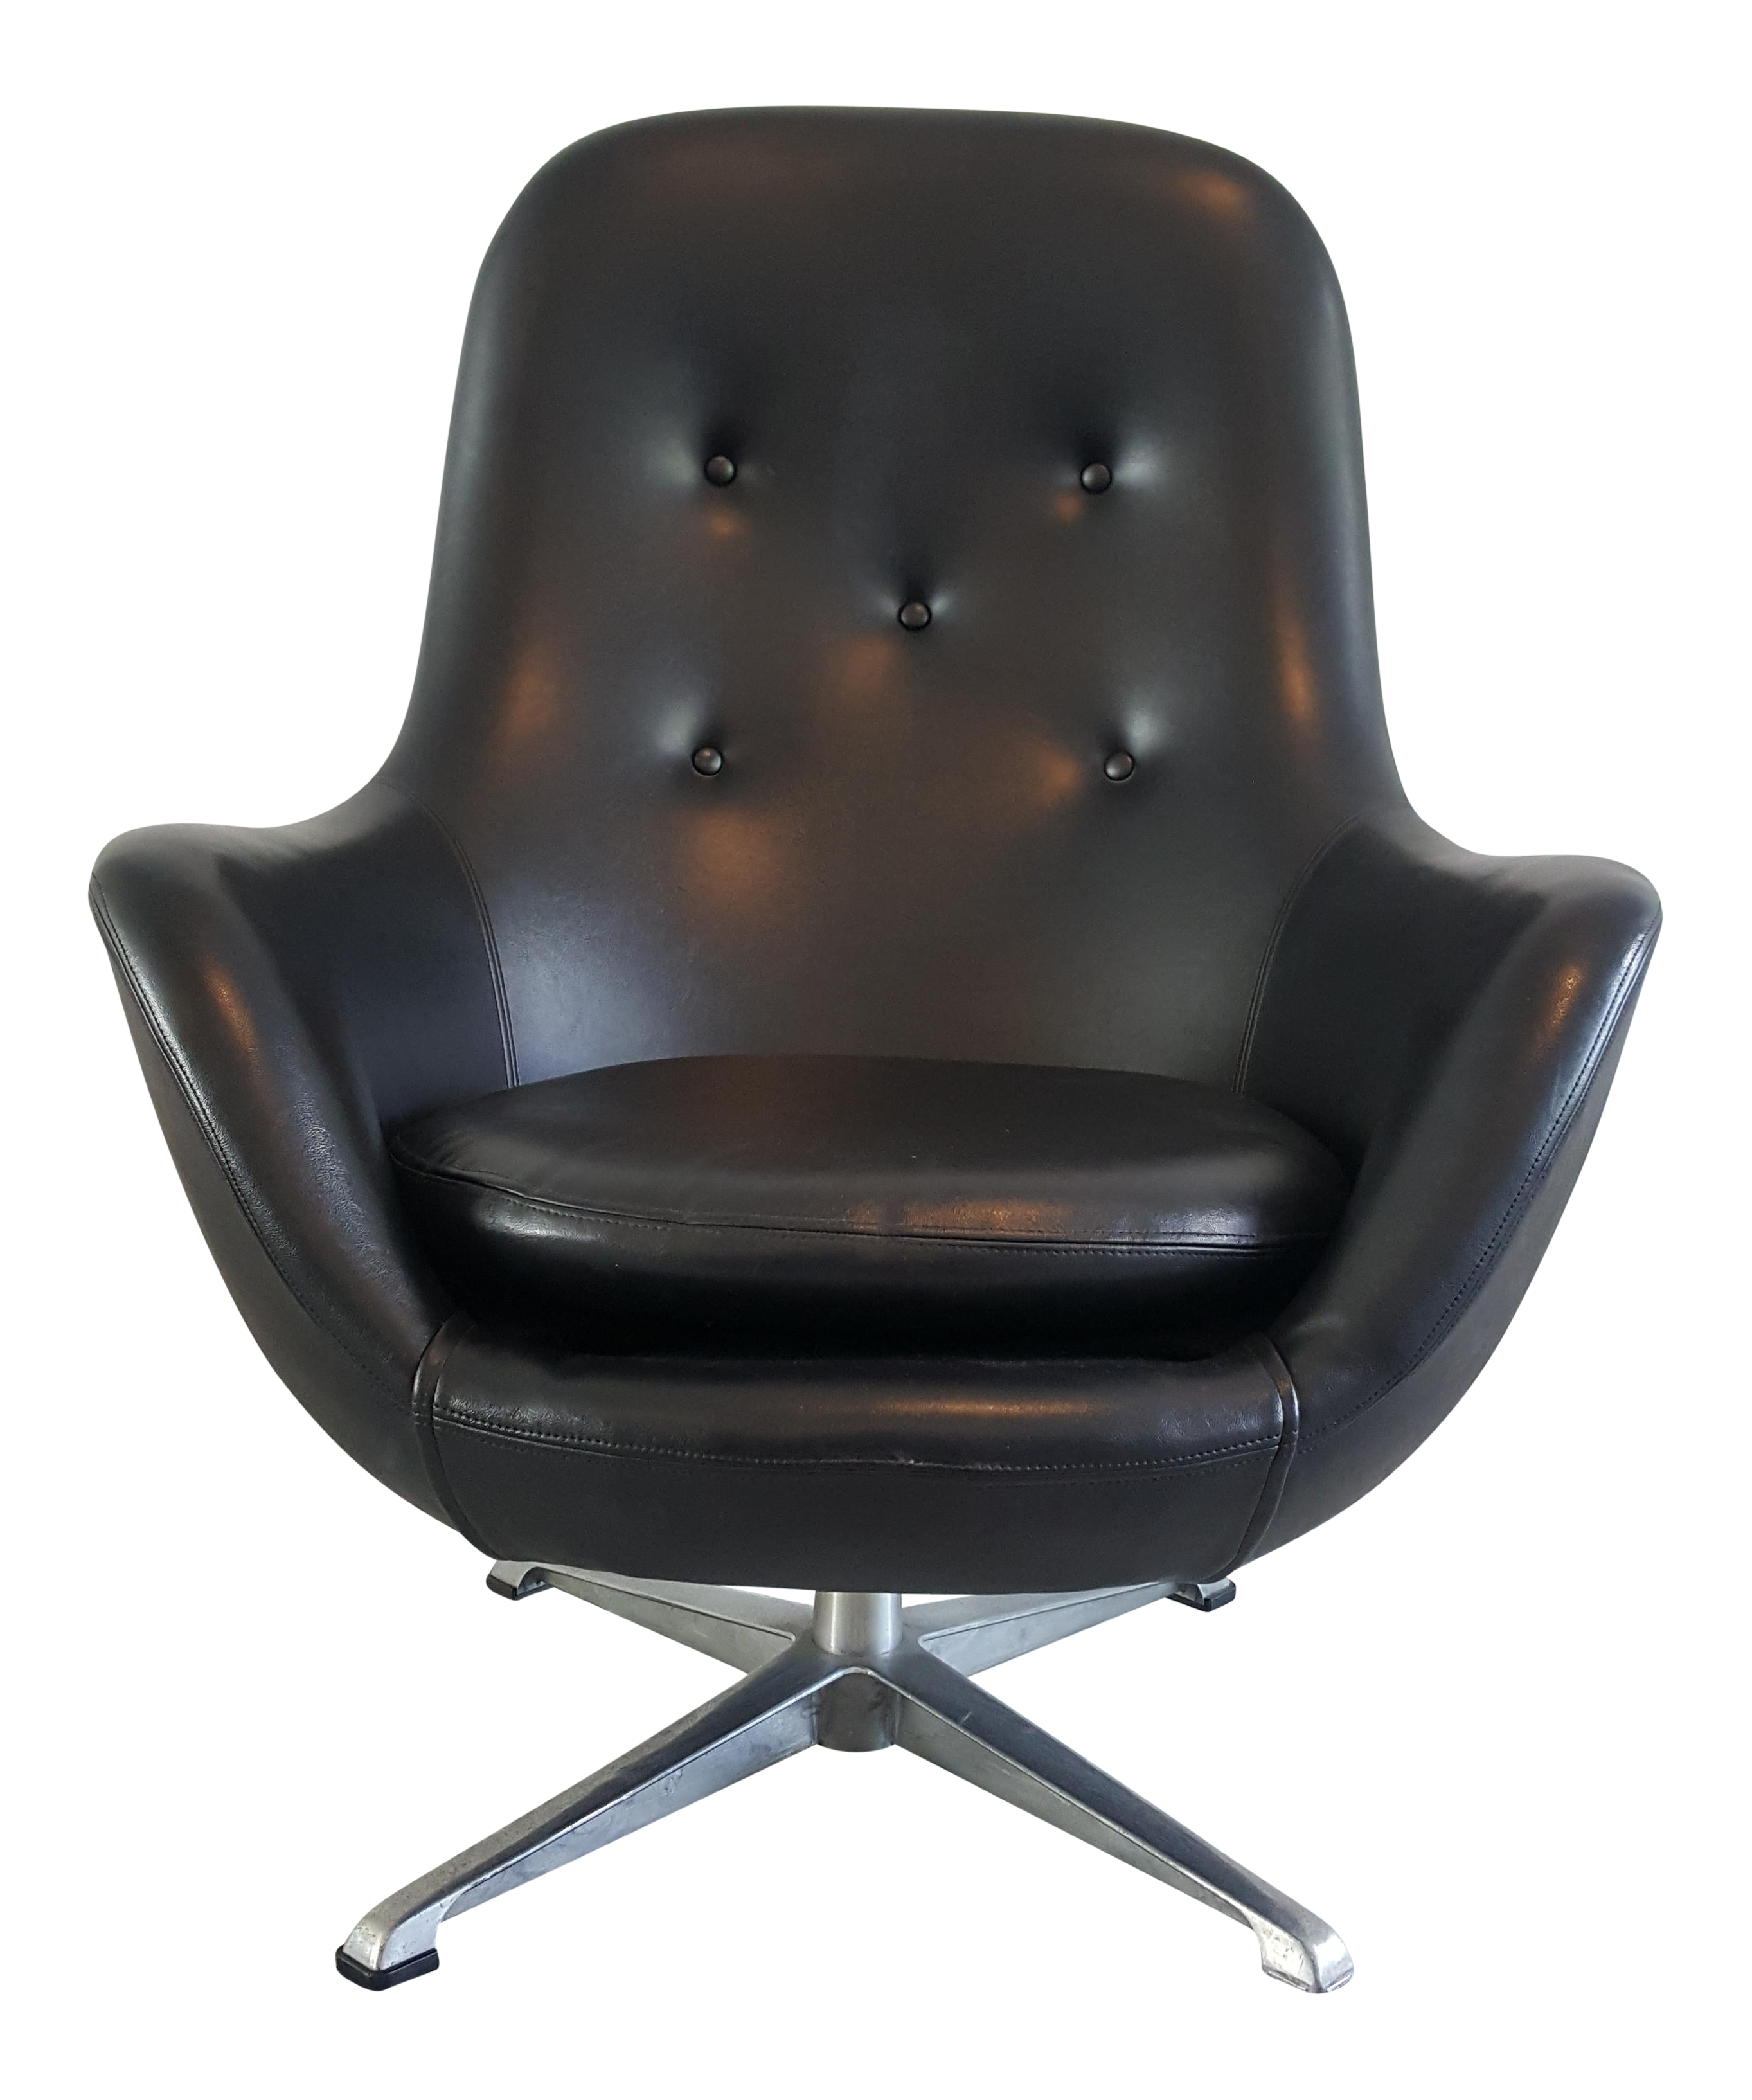 Exceptionnel Mid Century Modern Overman Ab Pod Chair   Image 1 Of 11